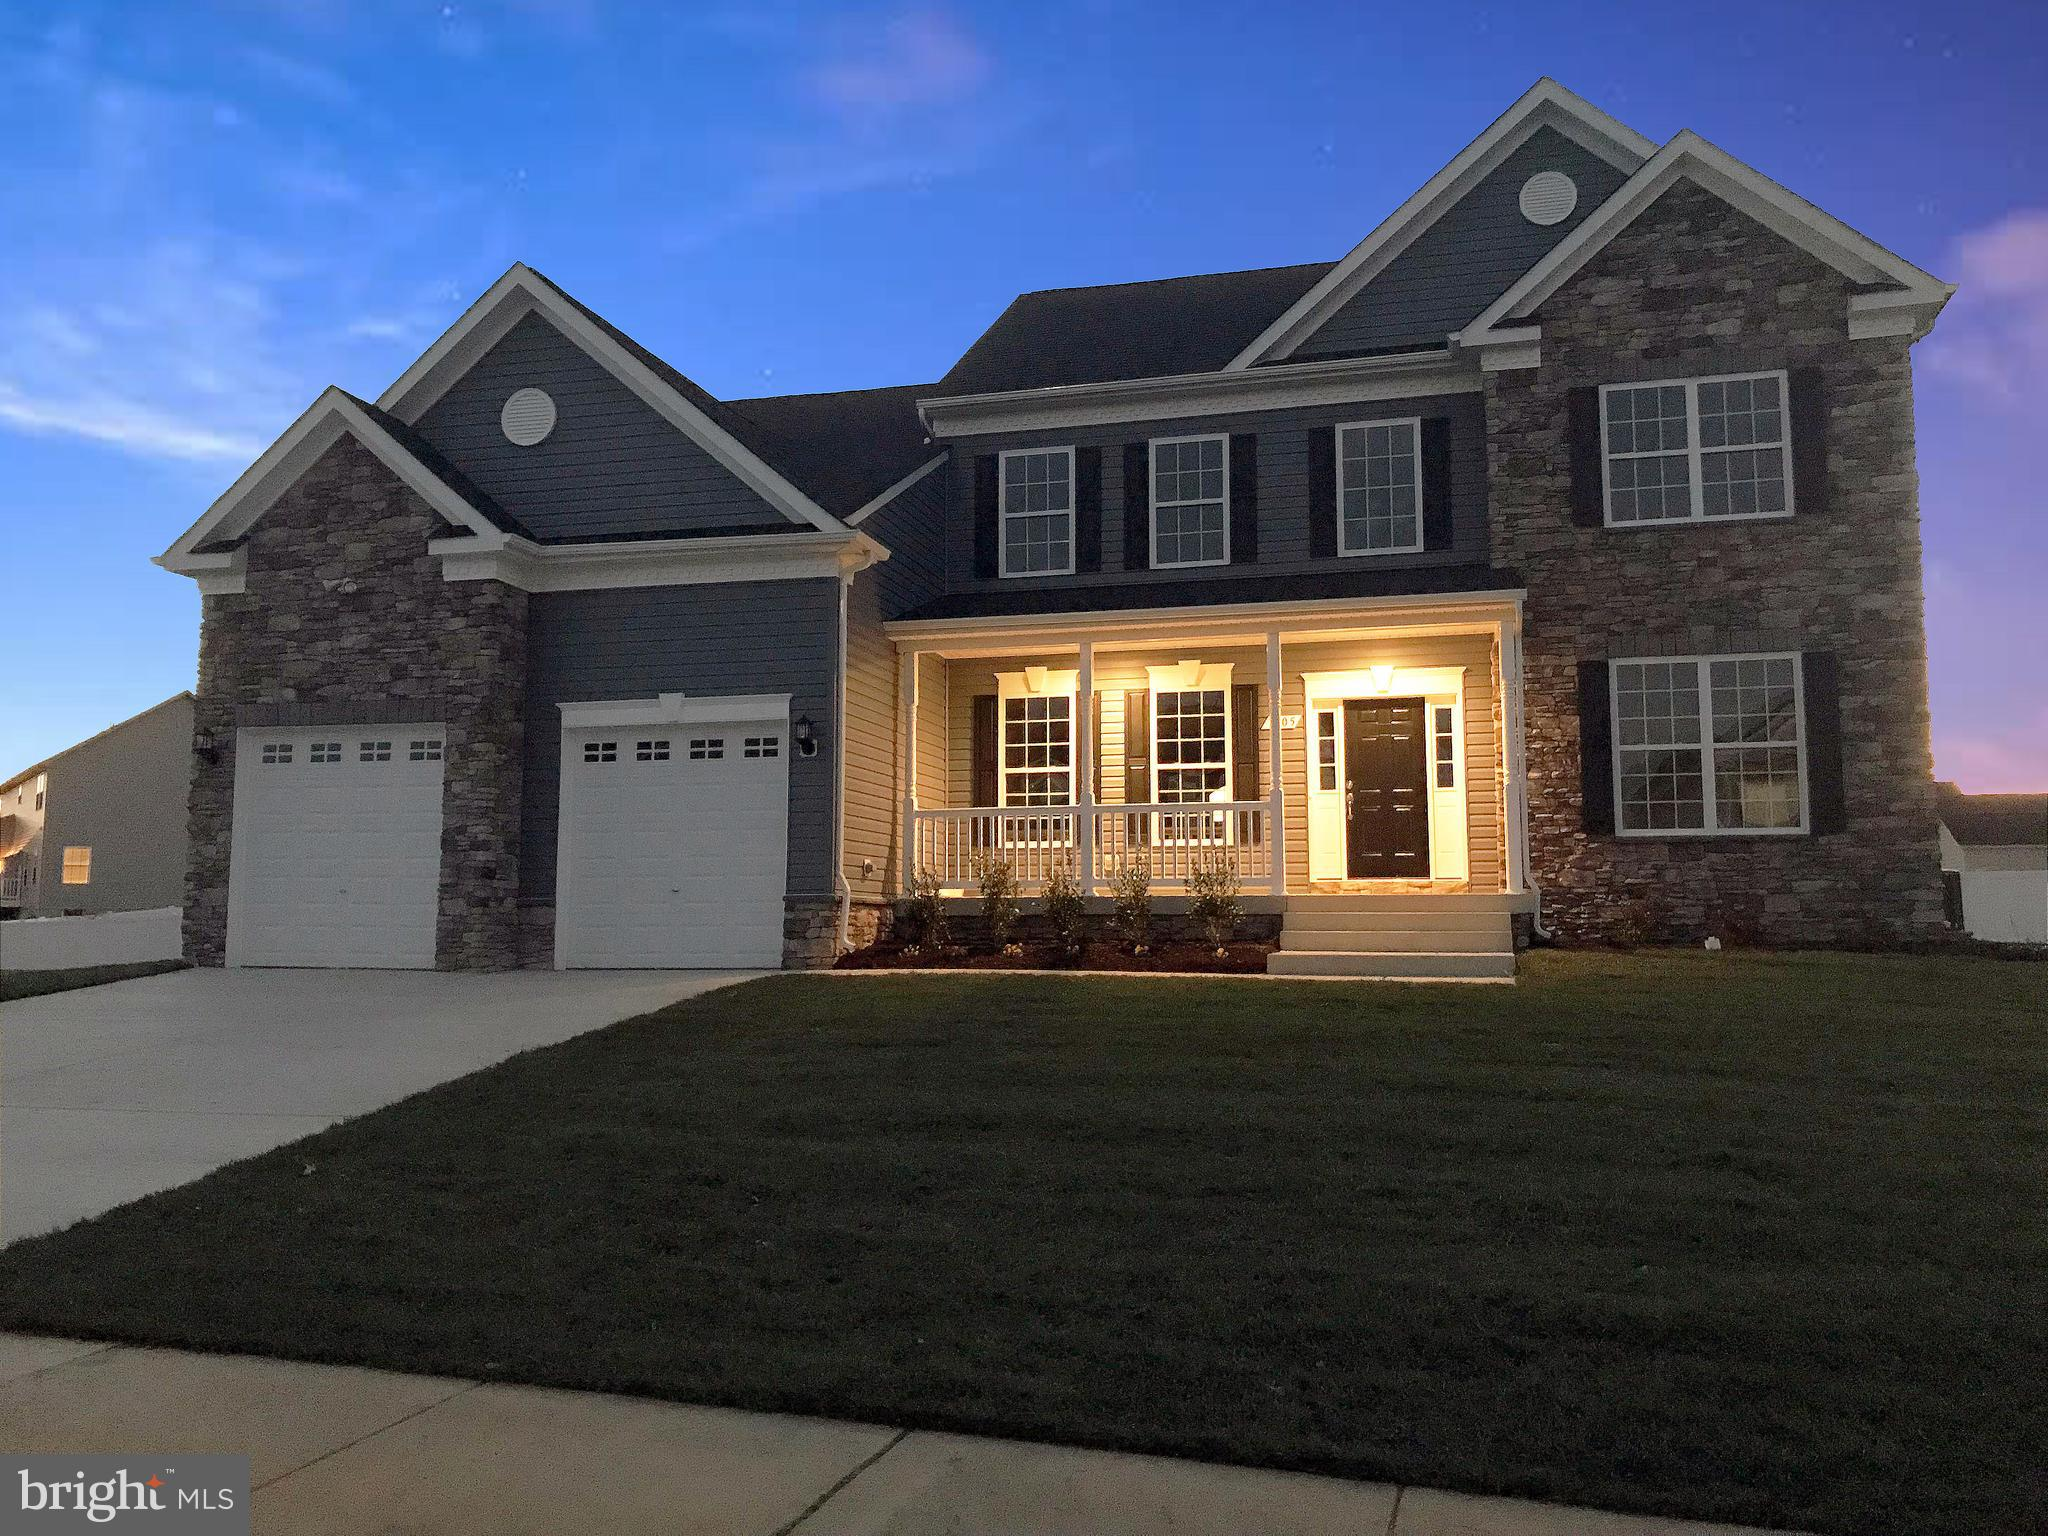 13835 BLUESTONE COURT, HUGHESVILLE, MD 20637